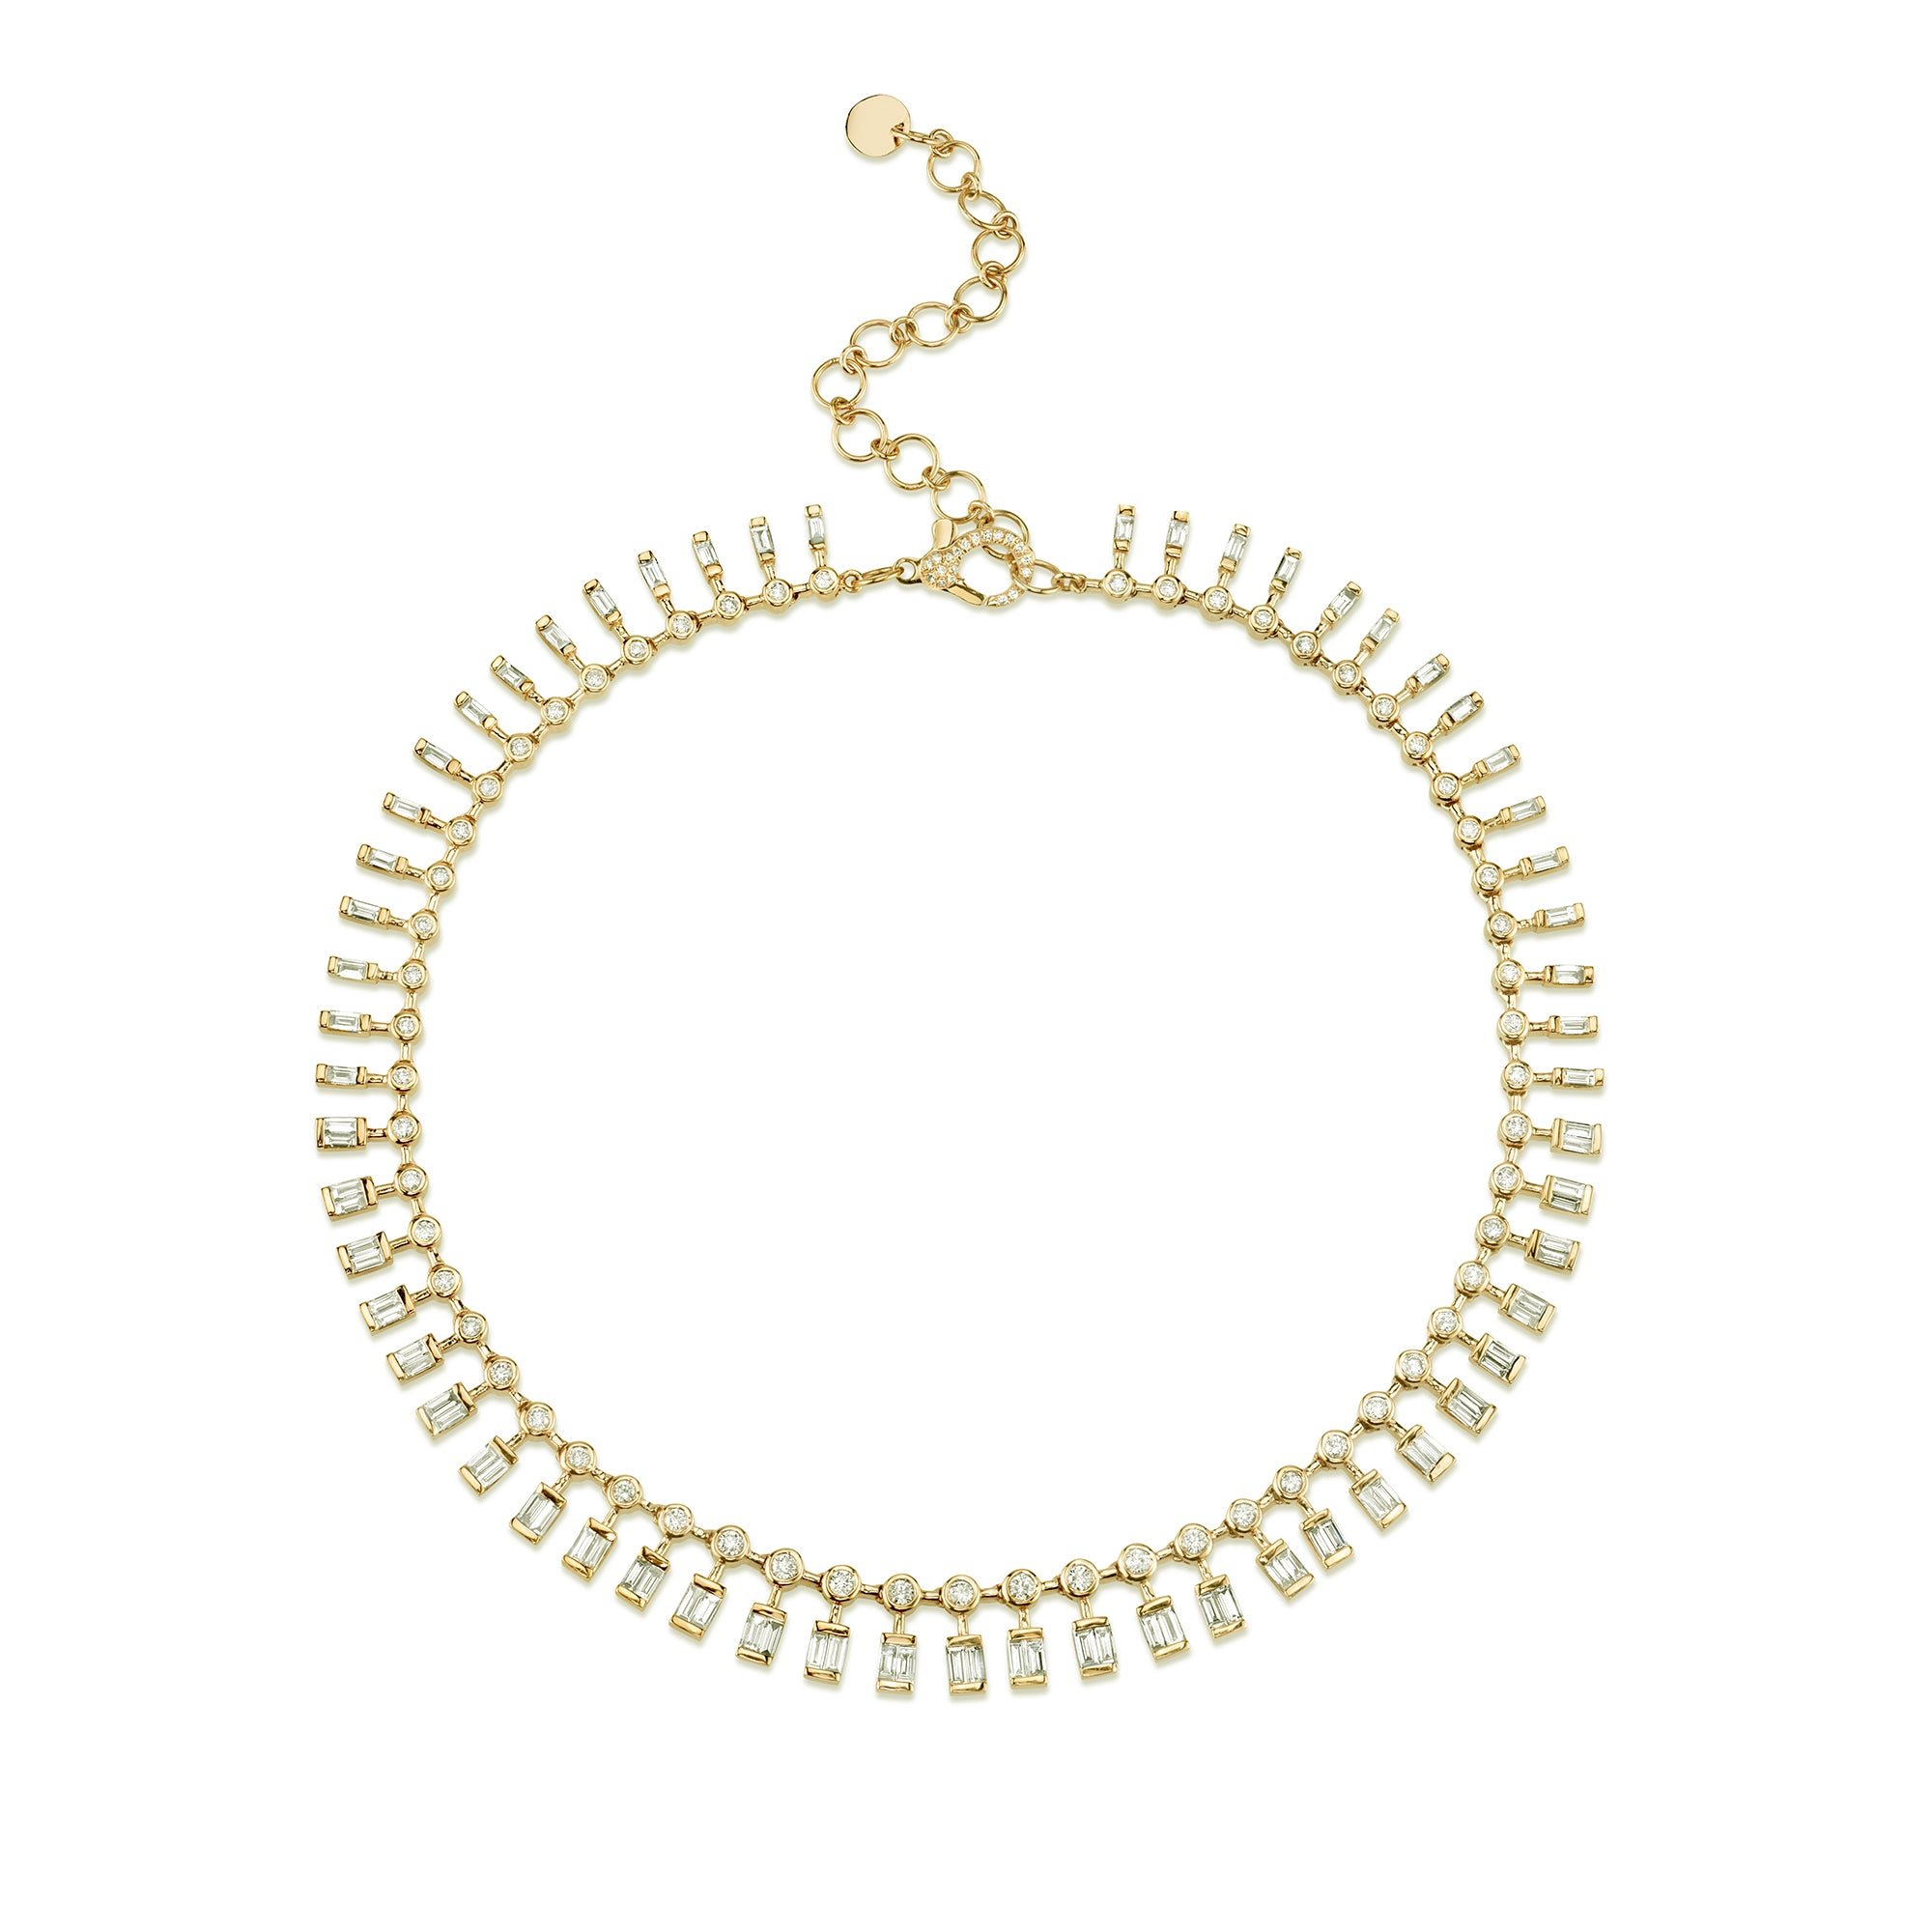 Dot Dash Diamond Necklace by Shay for Broken English Jewelry